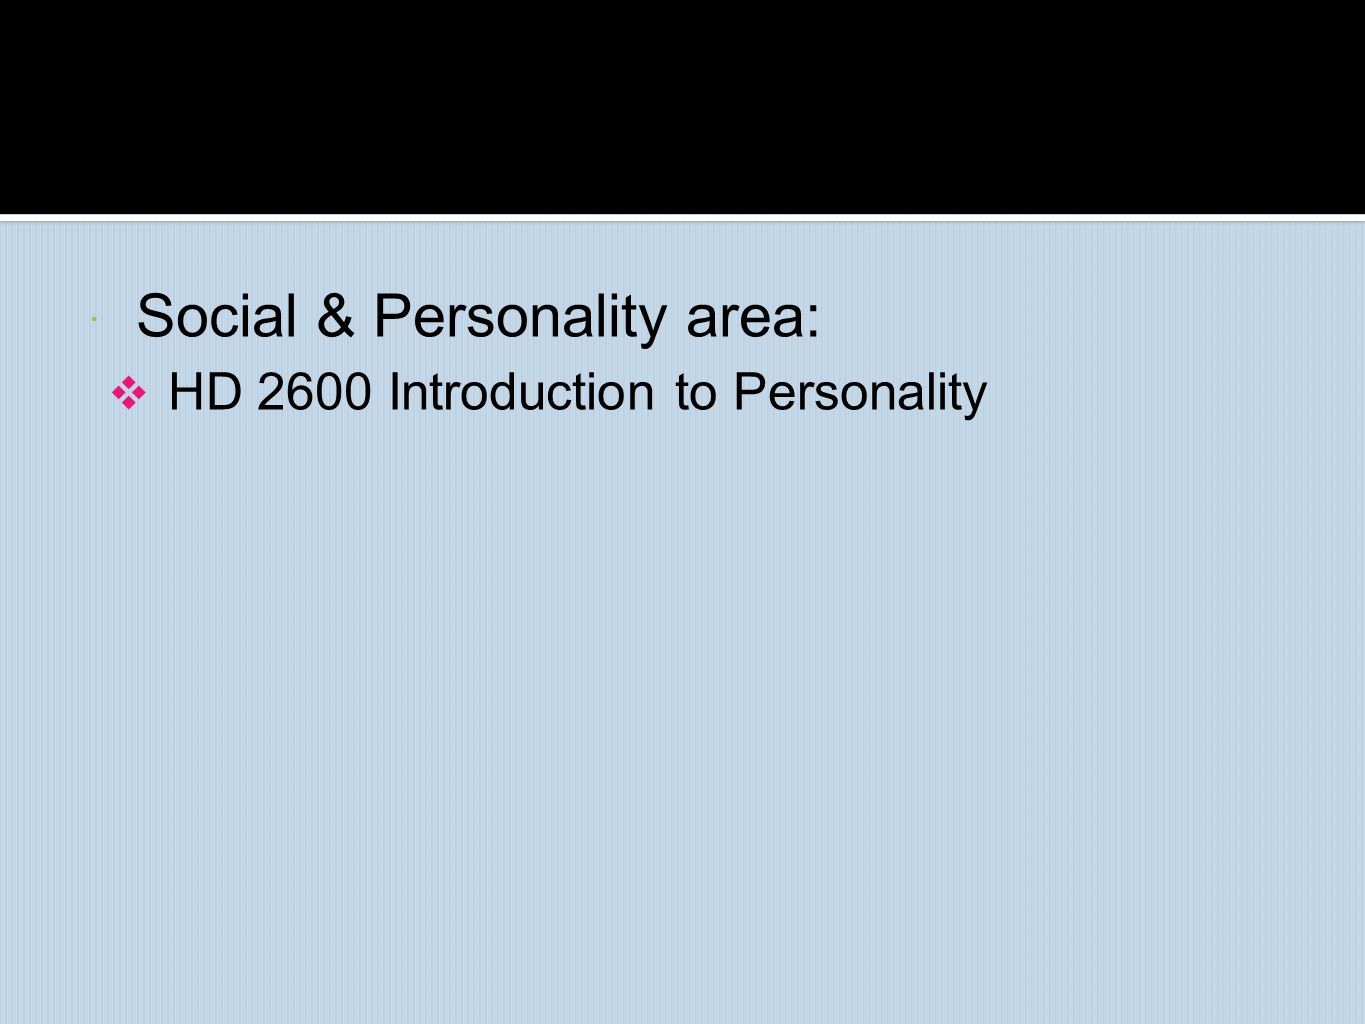 Social & Personality area: